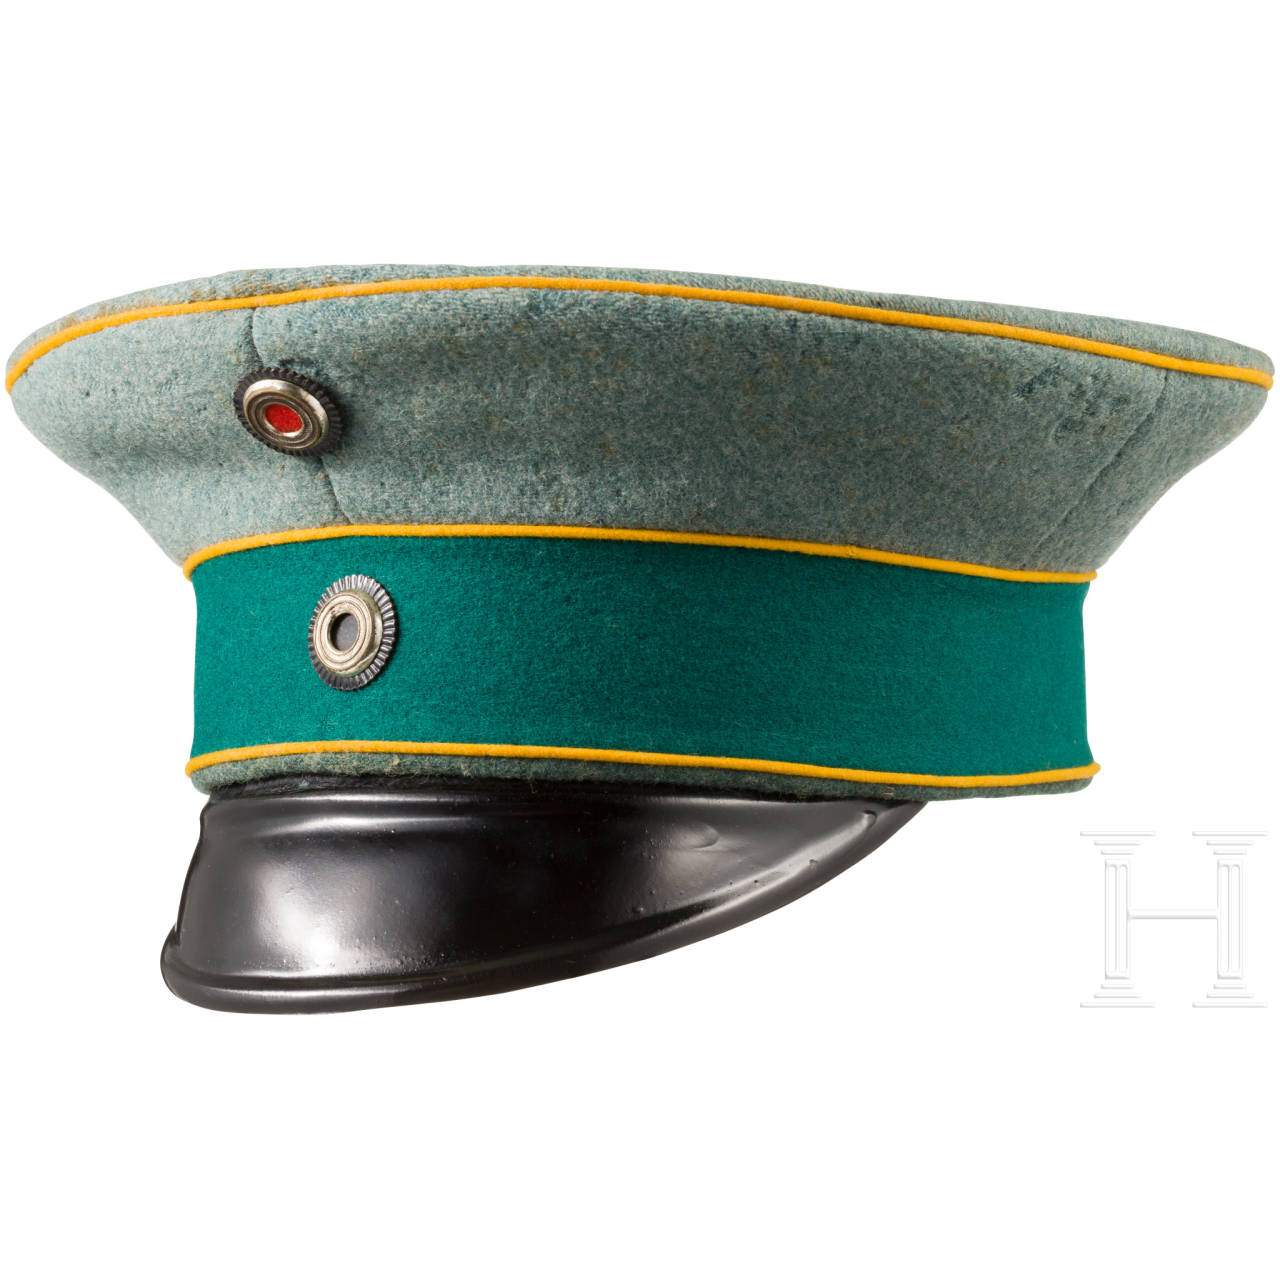 Visor cap for officers of the Prussian Mounted Rifles Regiments